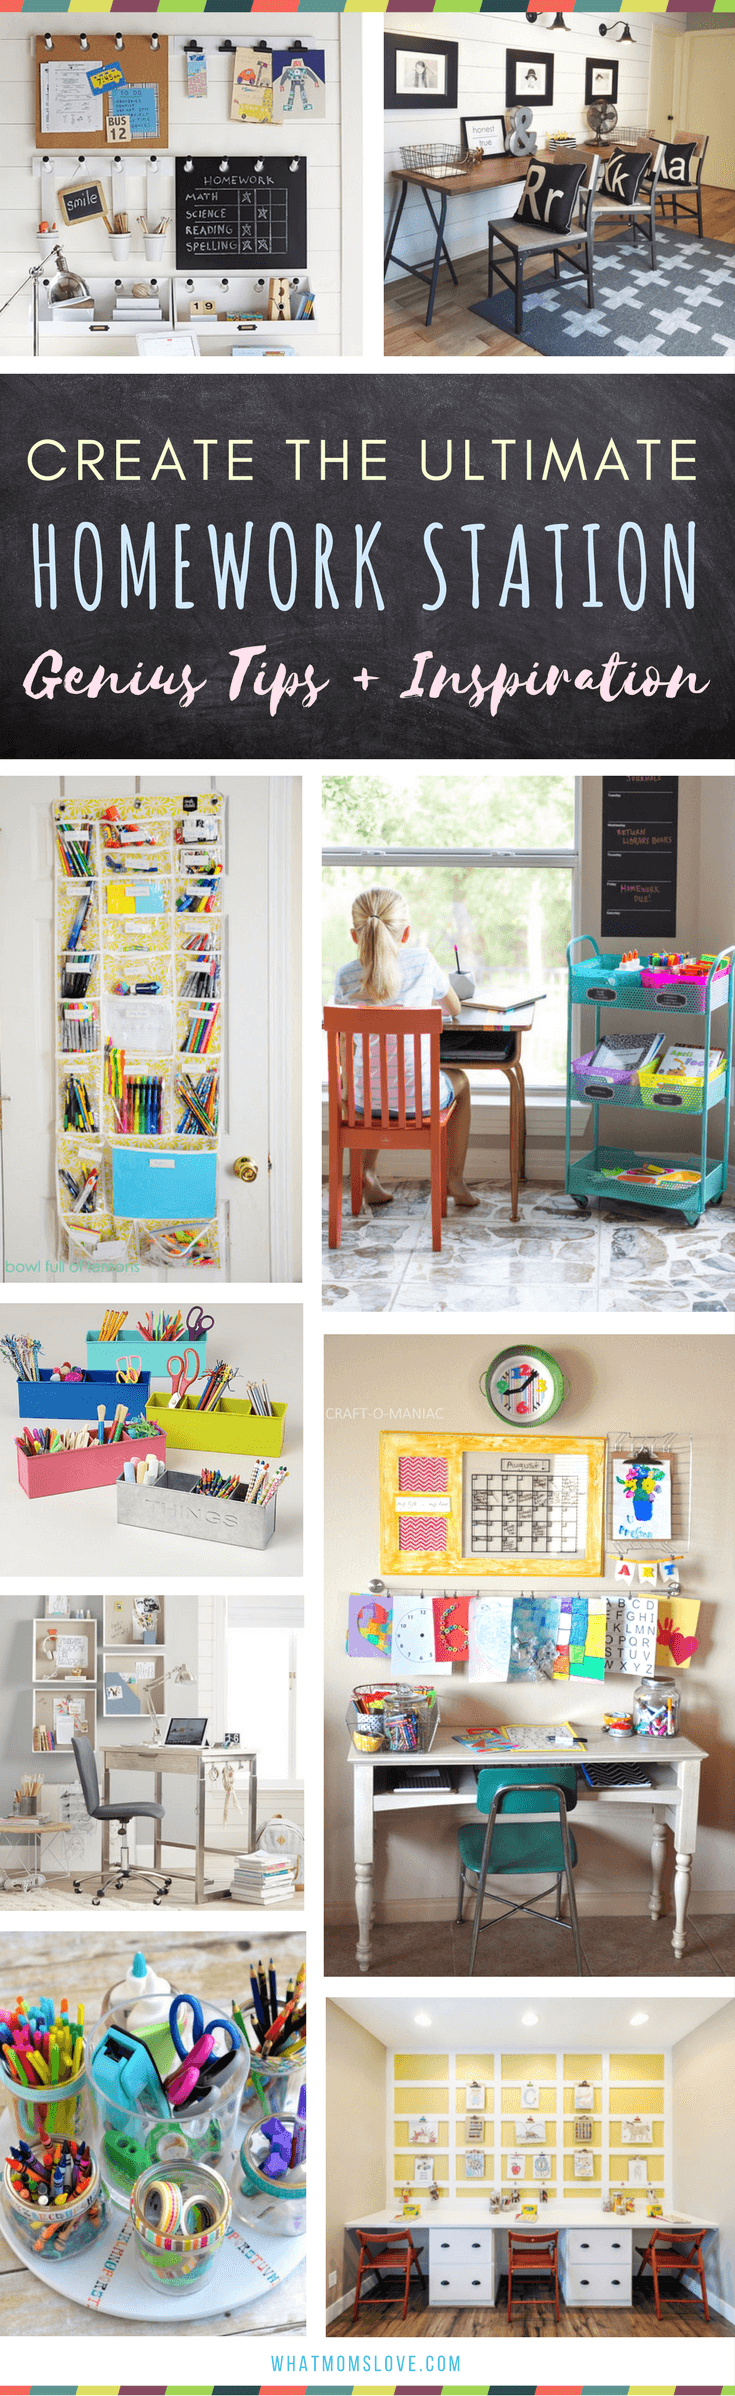 Homework Station for kids | The best organization ideas for how to create a study space at home for elementary school kids to teens. Many are DIY and portable - great for small spaces!